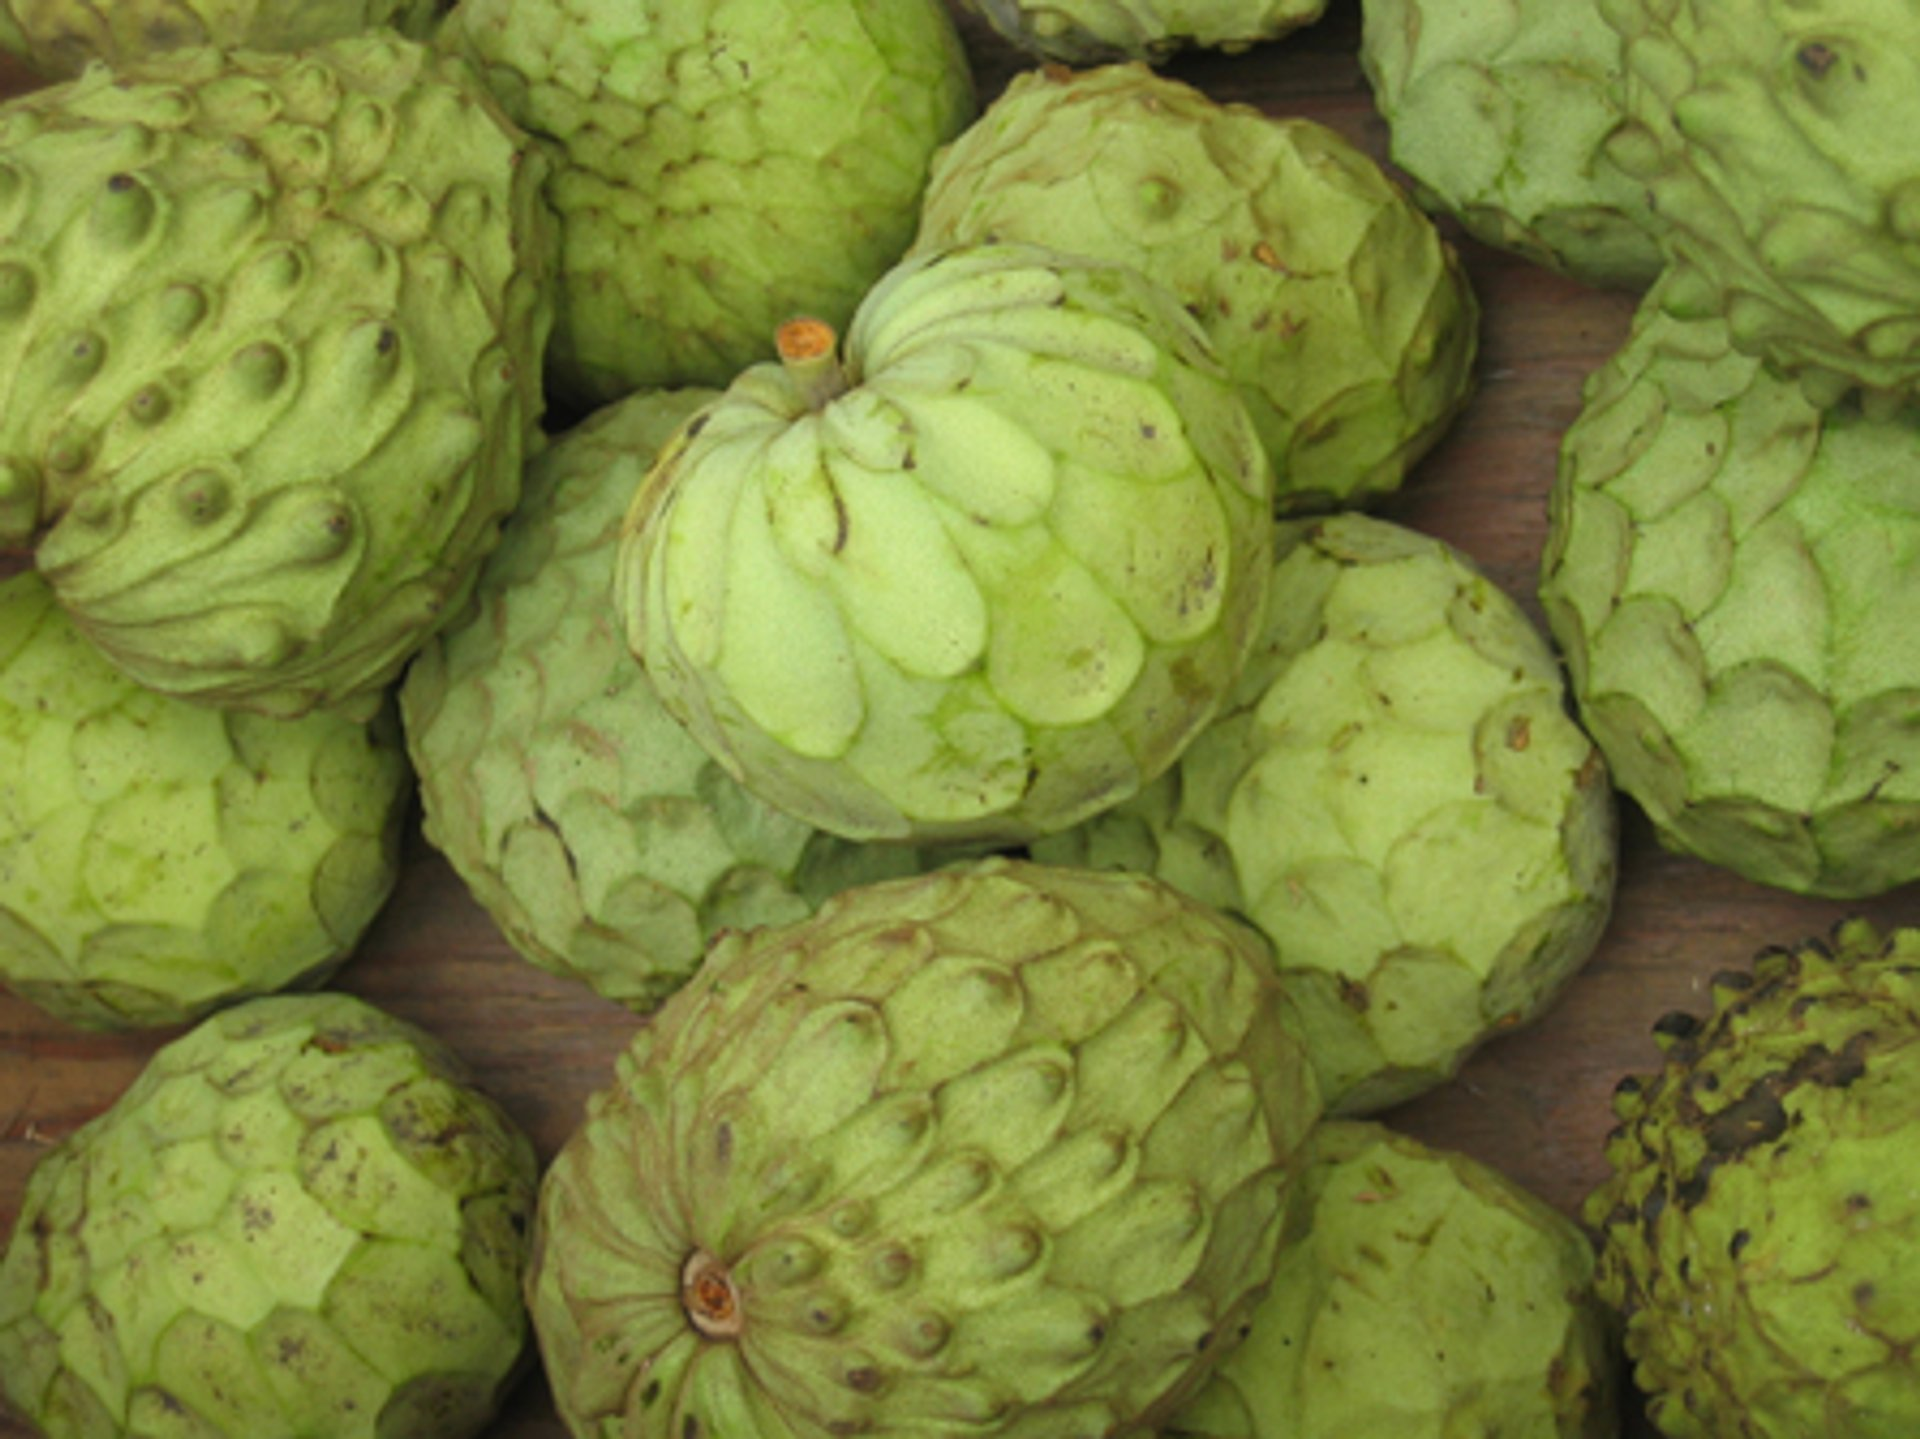 Cherimoya Season in Cuba 2020 - Best Time